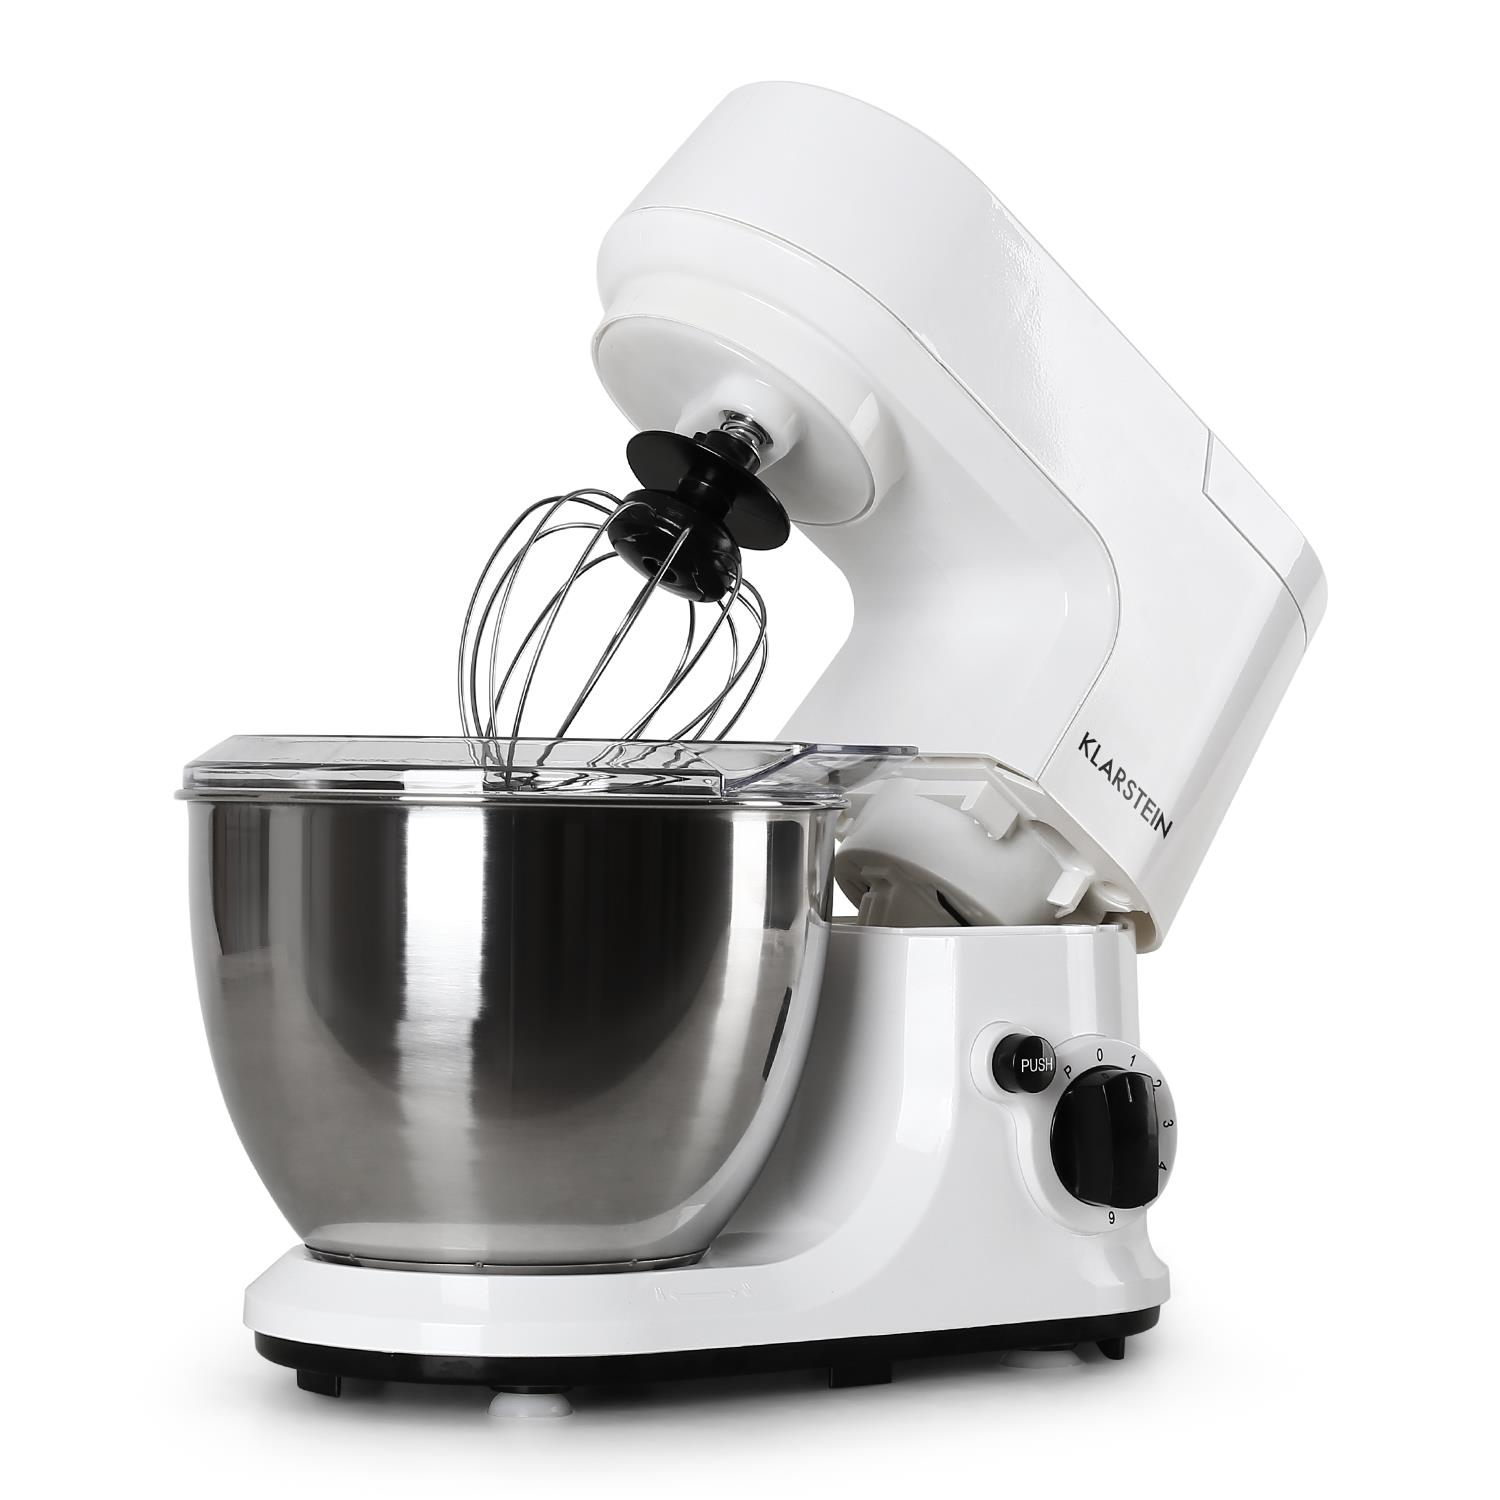 800W-STAINLESS-STEEL-4L-FOOD-PROCESSOR-DOUGH-MIXER-WHITE-FREE-P-amp-P-UK-OFFER